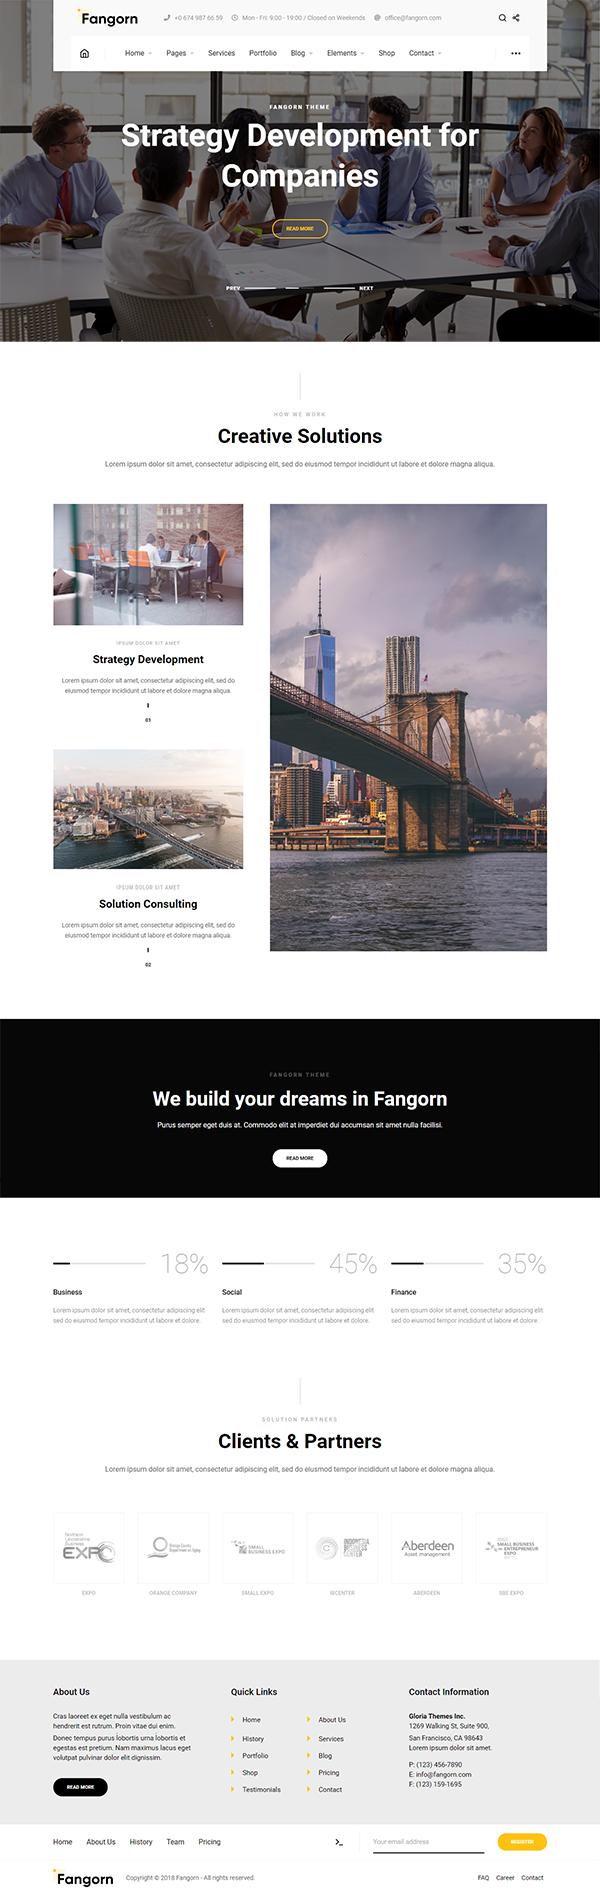 Fangorn - Business & Company WordPress Theme